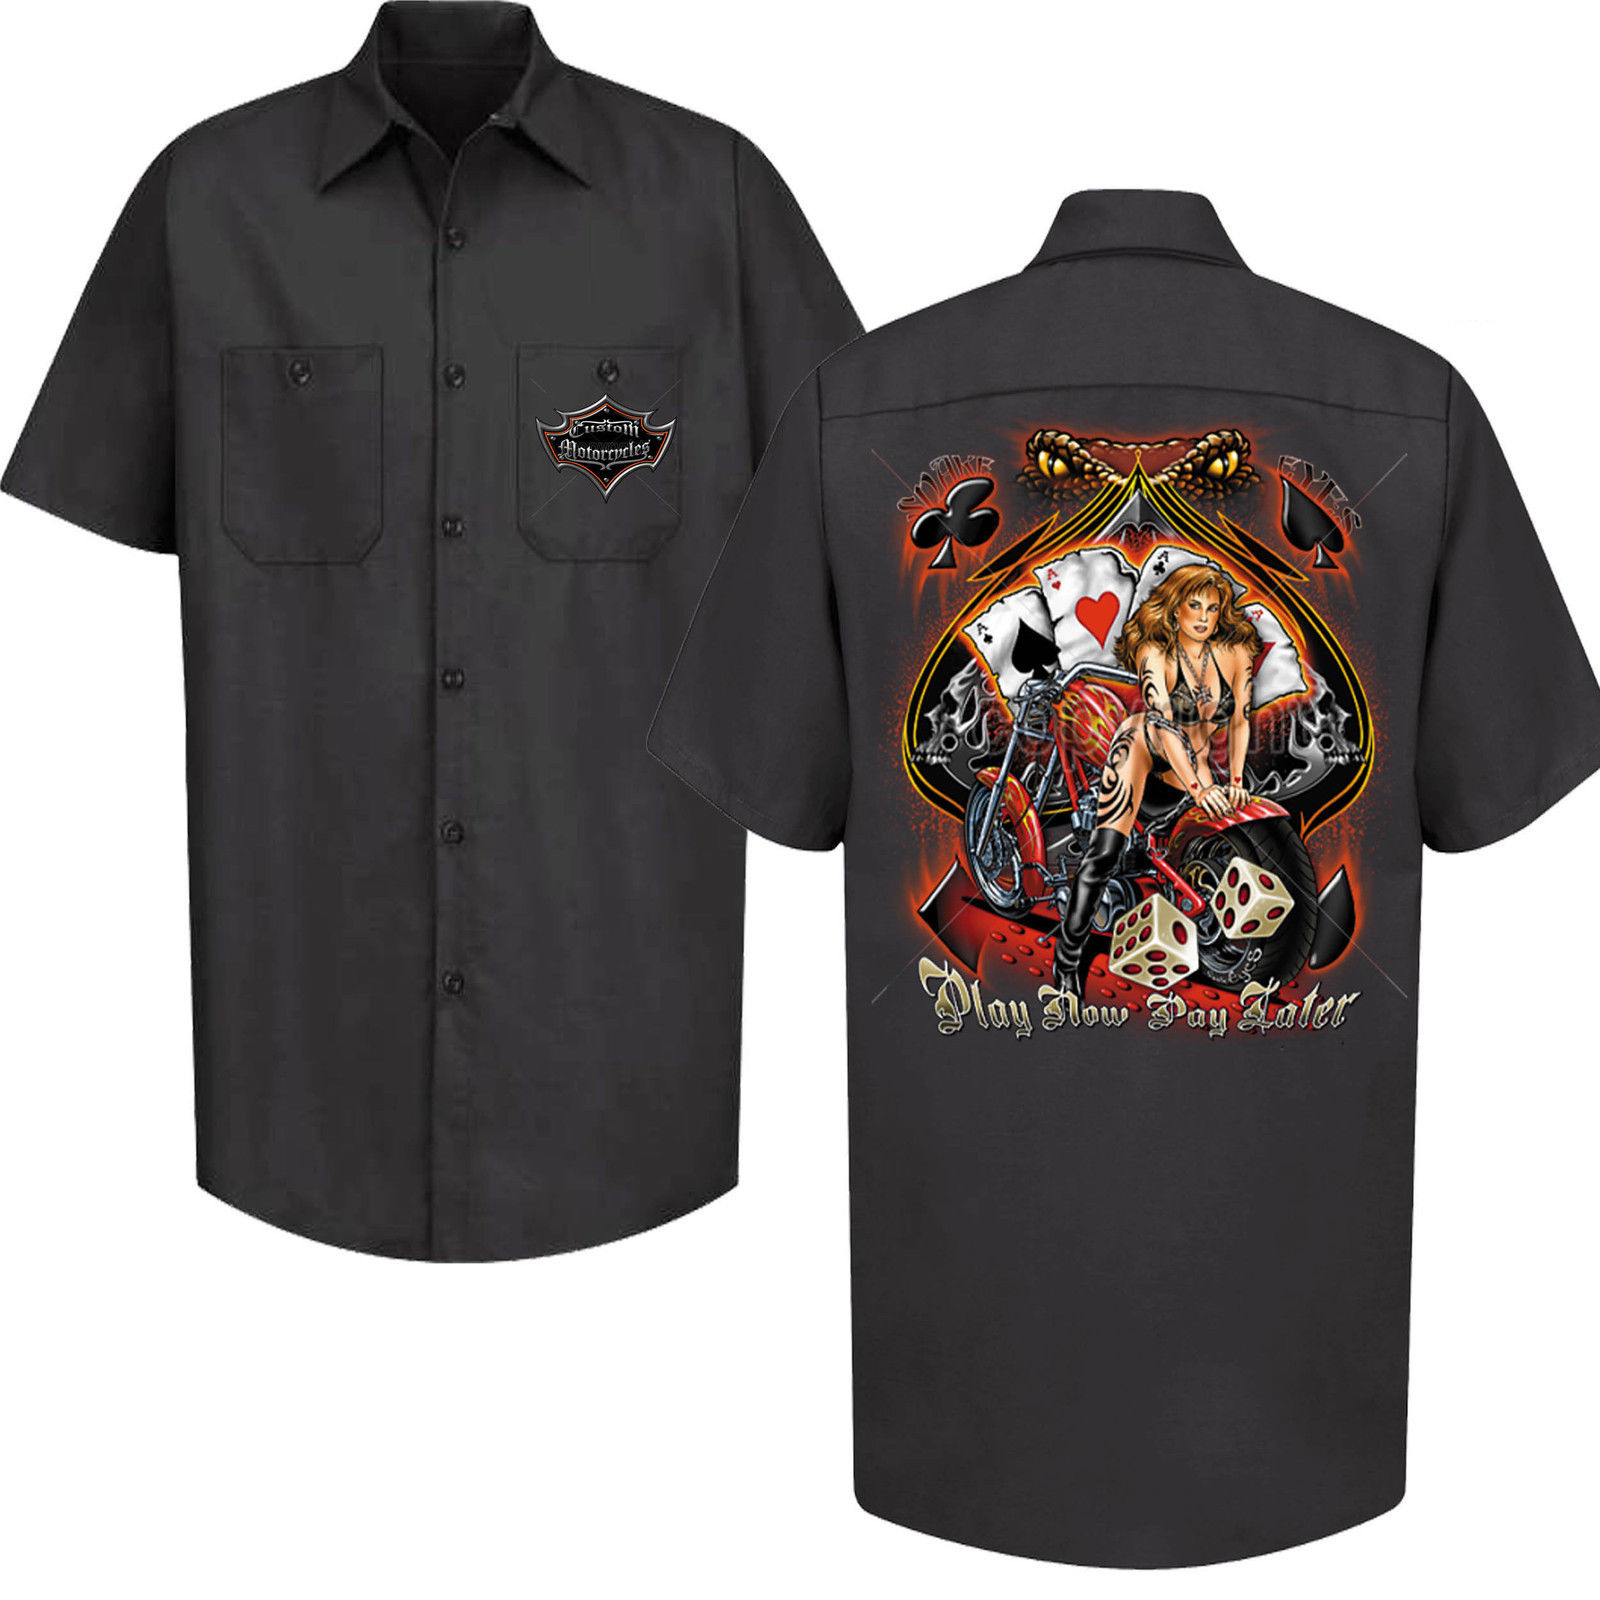 Custom Garage Work Shirts Bcd Tofu House